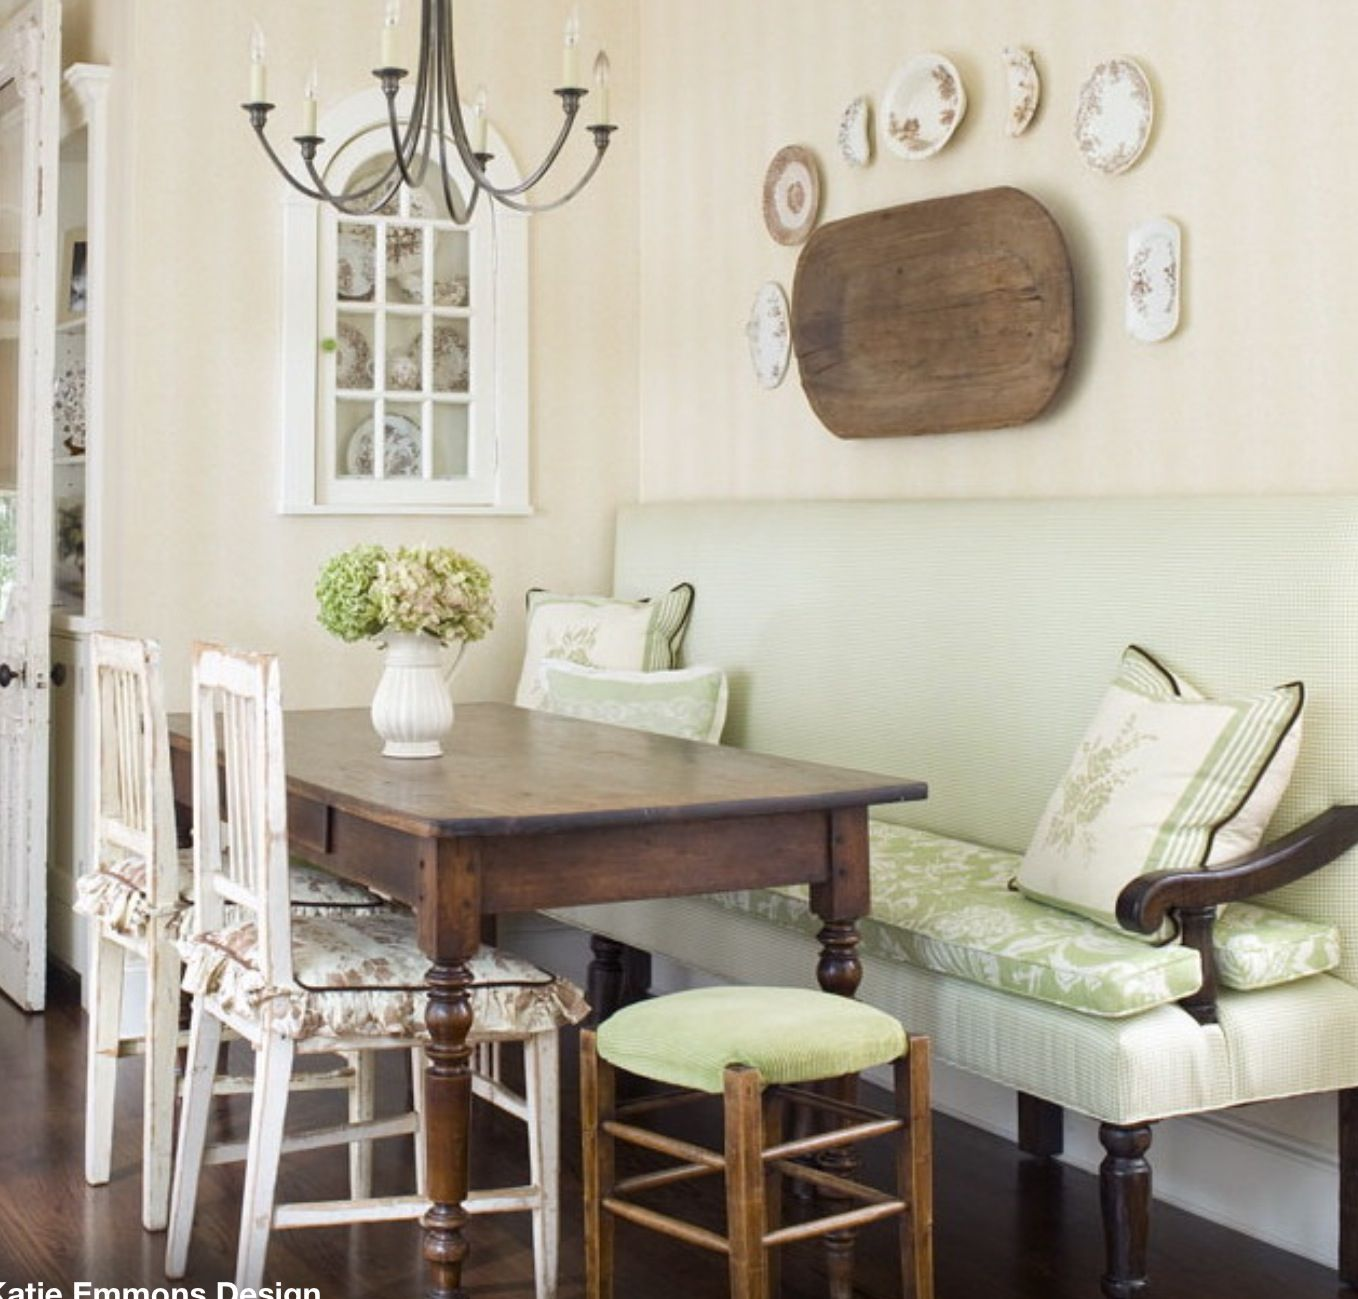 dining room banquette furniture. Banquette, Table, Chairs. Dining Room Banquette Furniture A